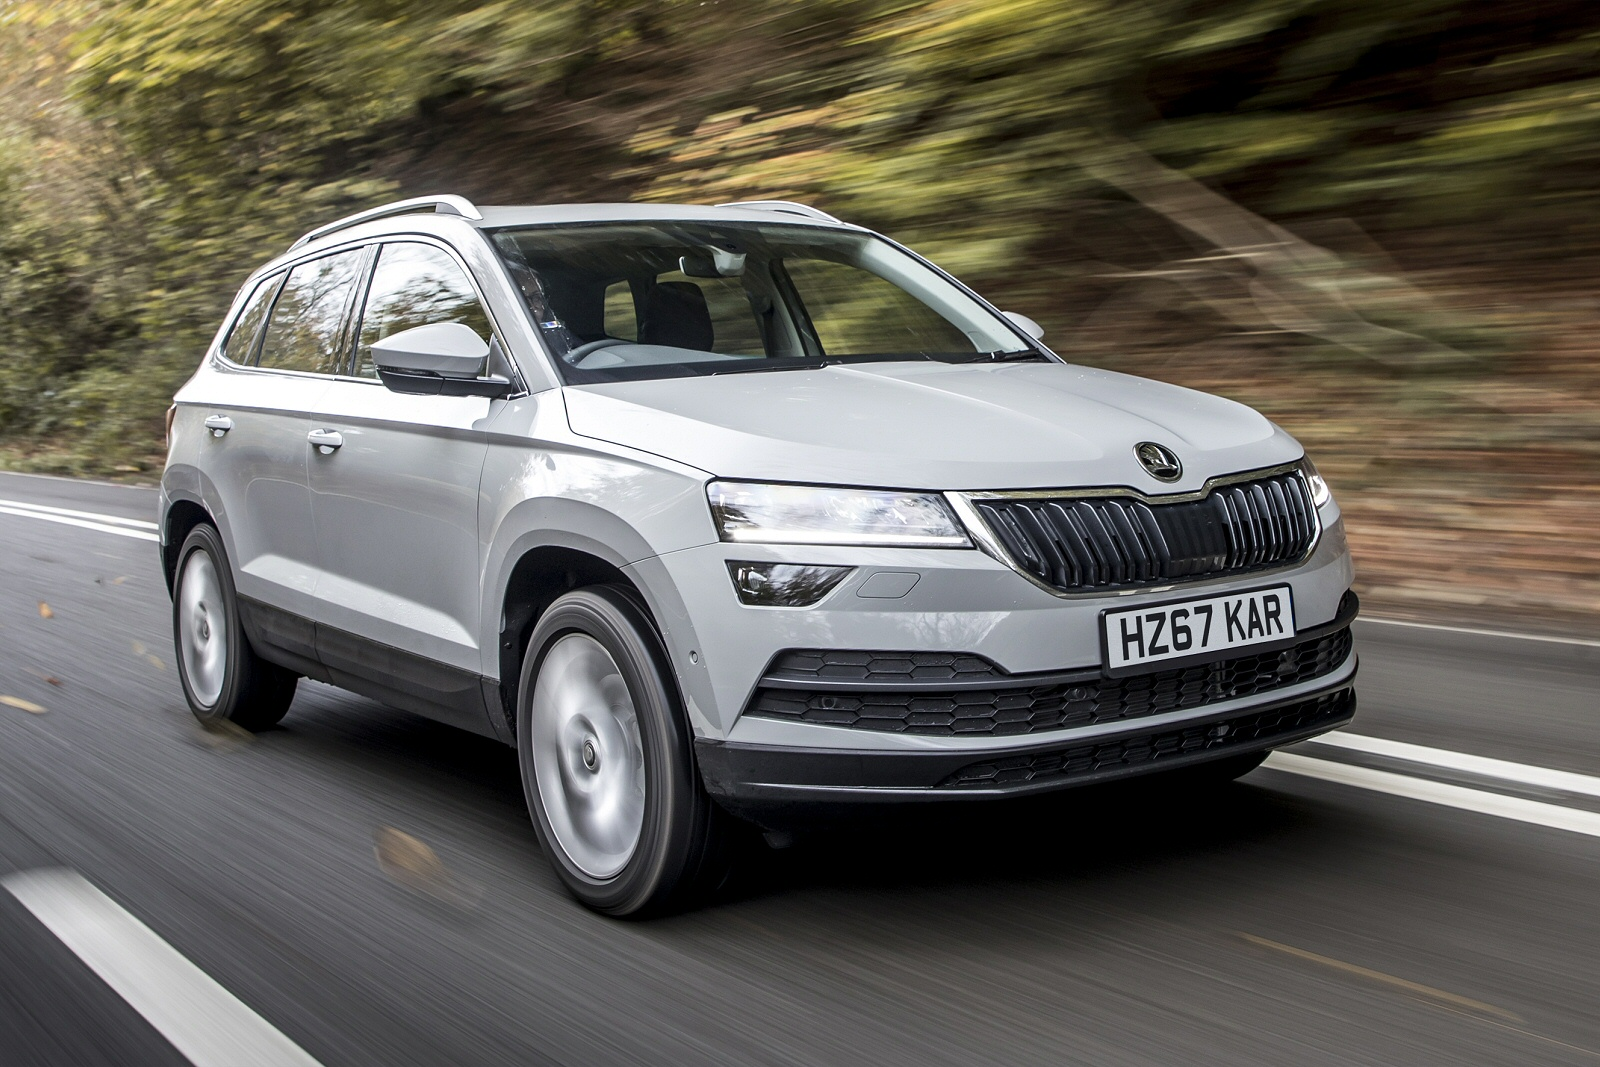 new skoda karoq 1 5 tsi se technology 5dr dsg petrol estate for sale bristol street. Black Bedroom Furniture Sets. Home Design Ideas